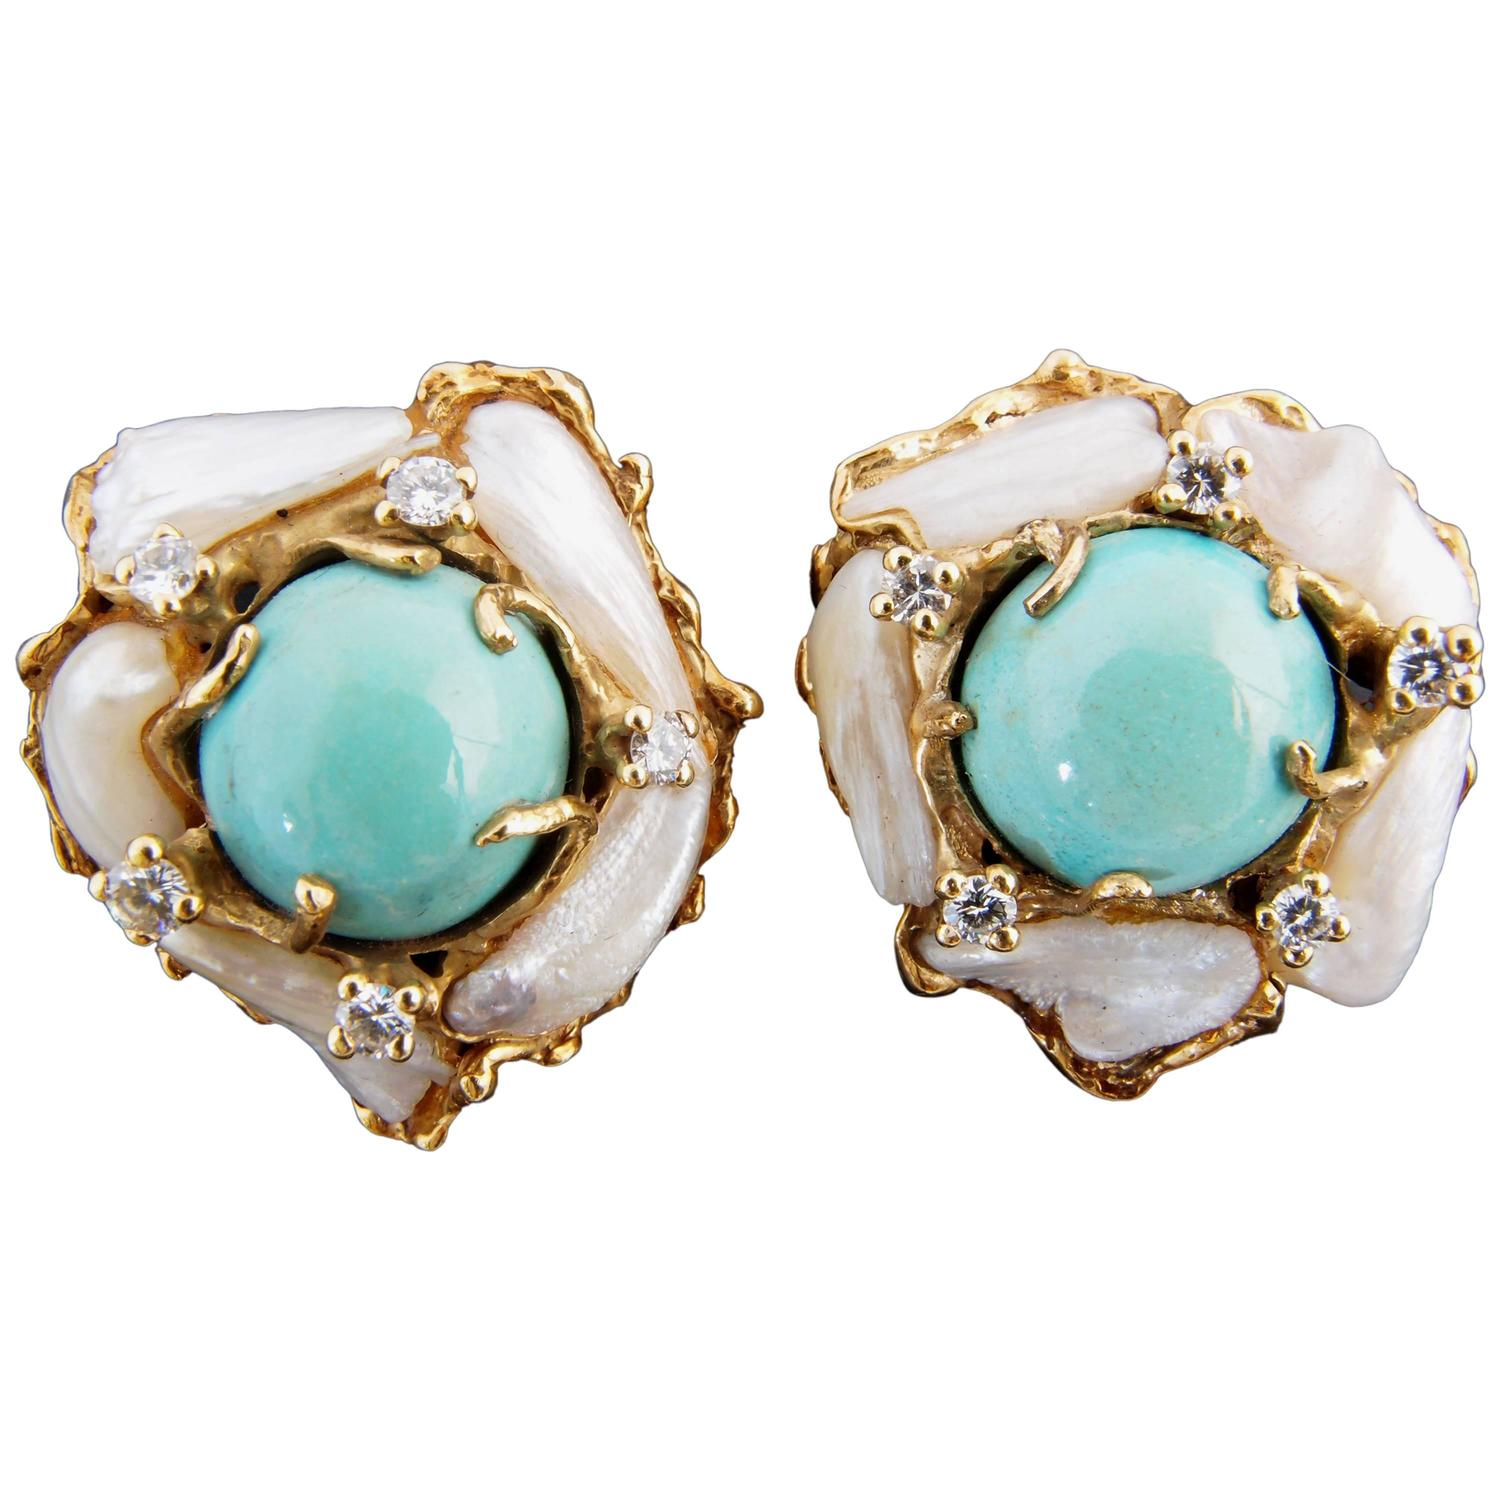 1970s Arthur King Persian Turquoise Pearl Diamond Gold Earrings At 1stdibs